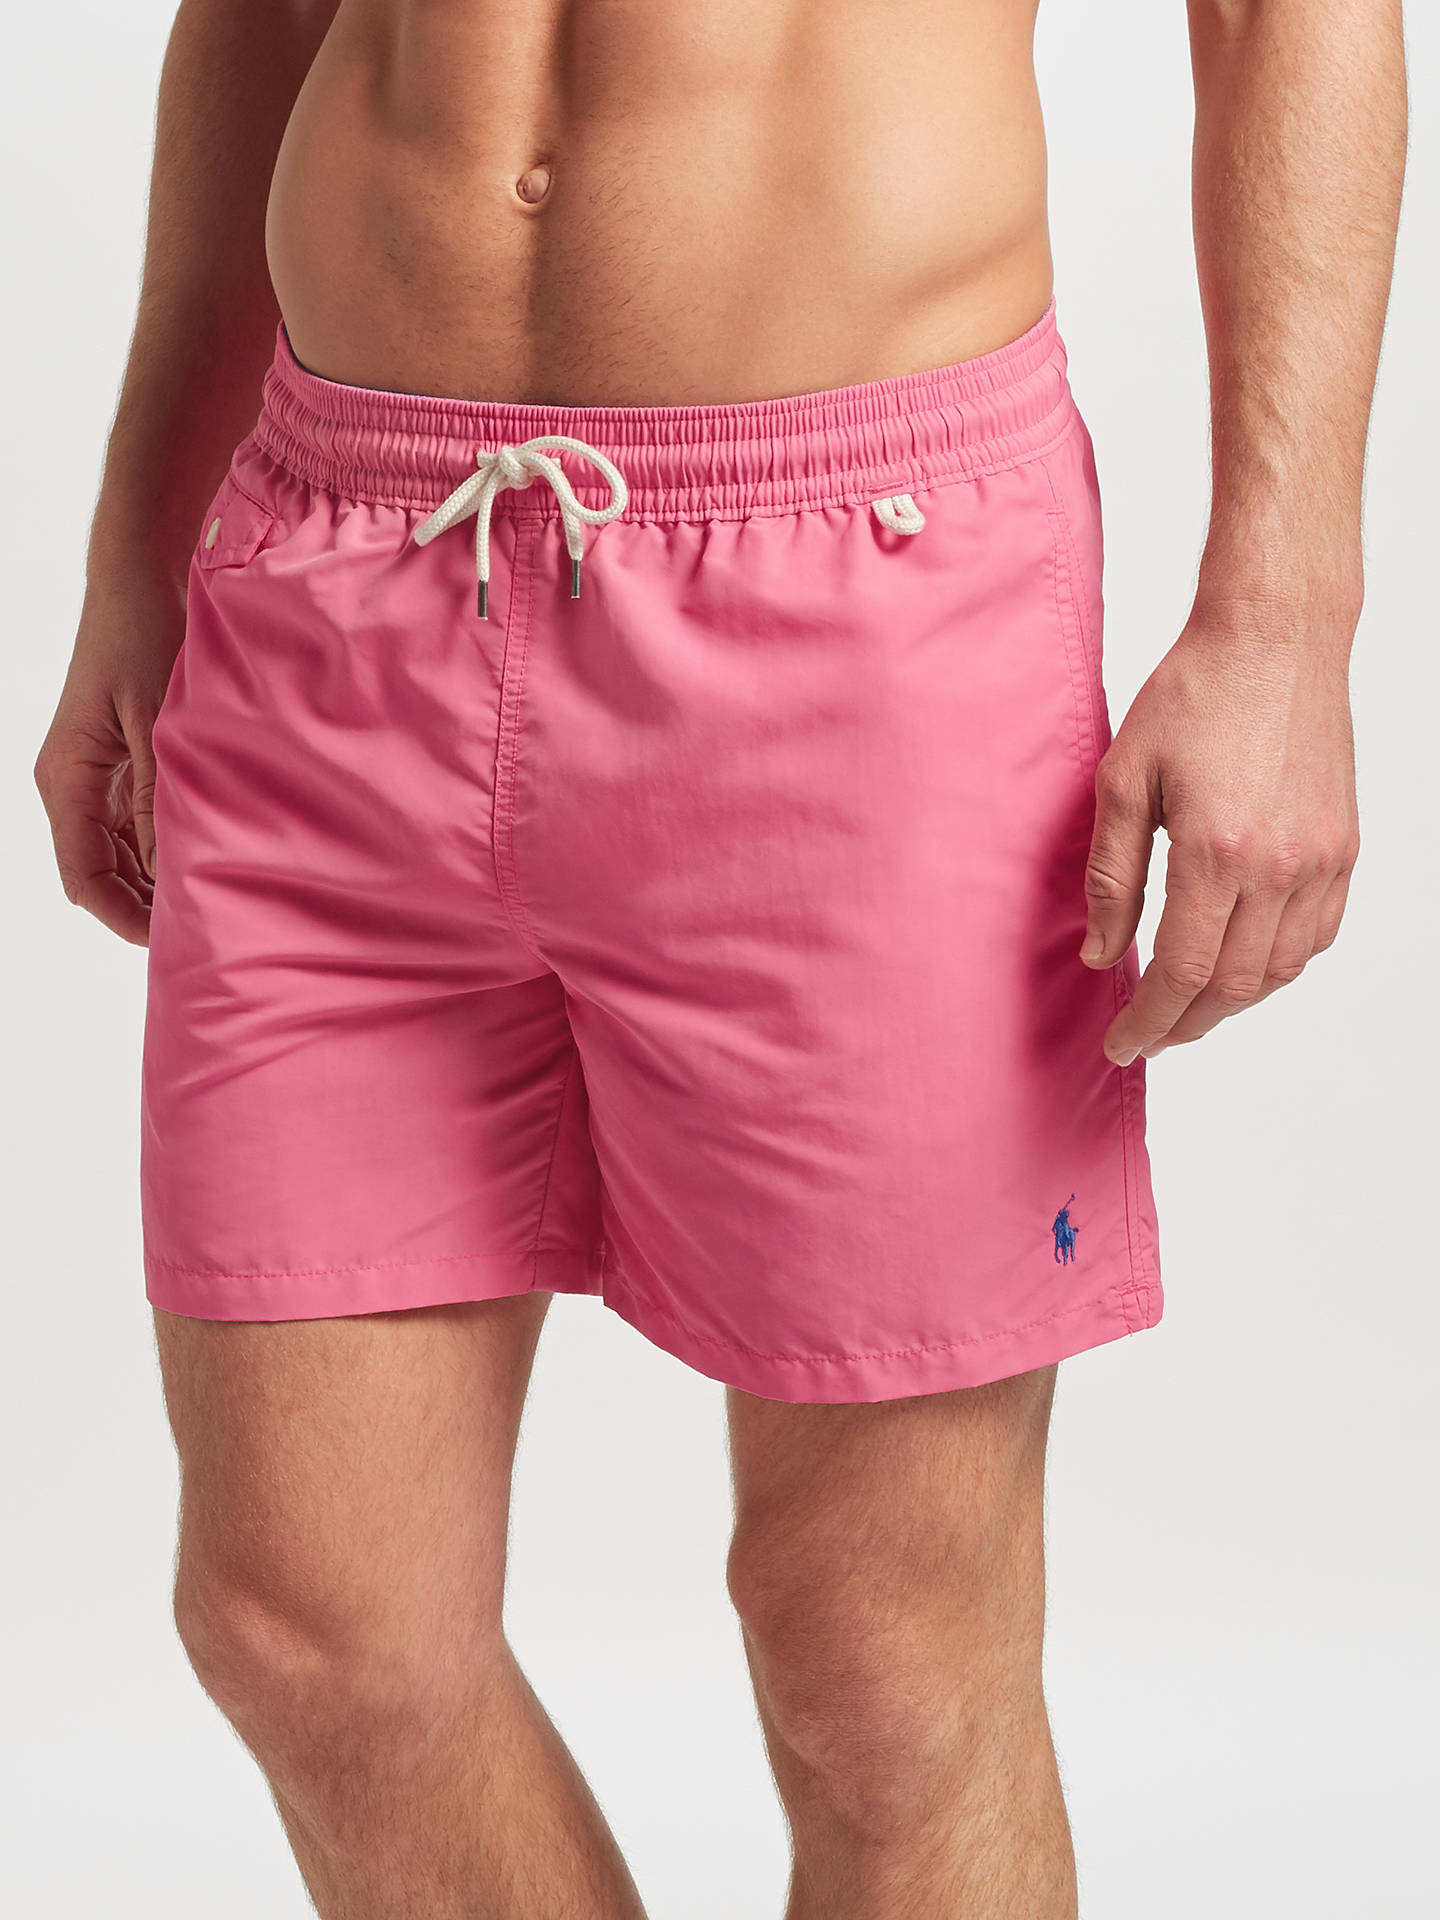 7b26c41d997a0 Buy Polo Ralph Lauren Traveller Swim Shorts, Chroma Pink, S Online at  johnlewis.